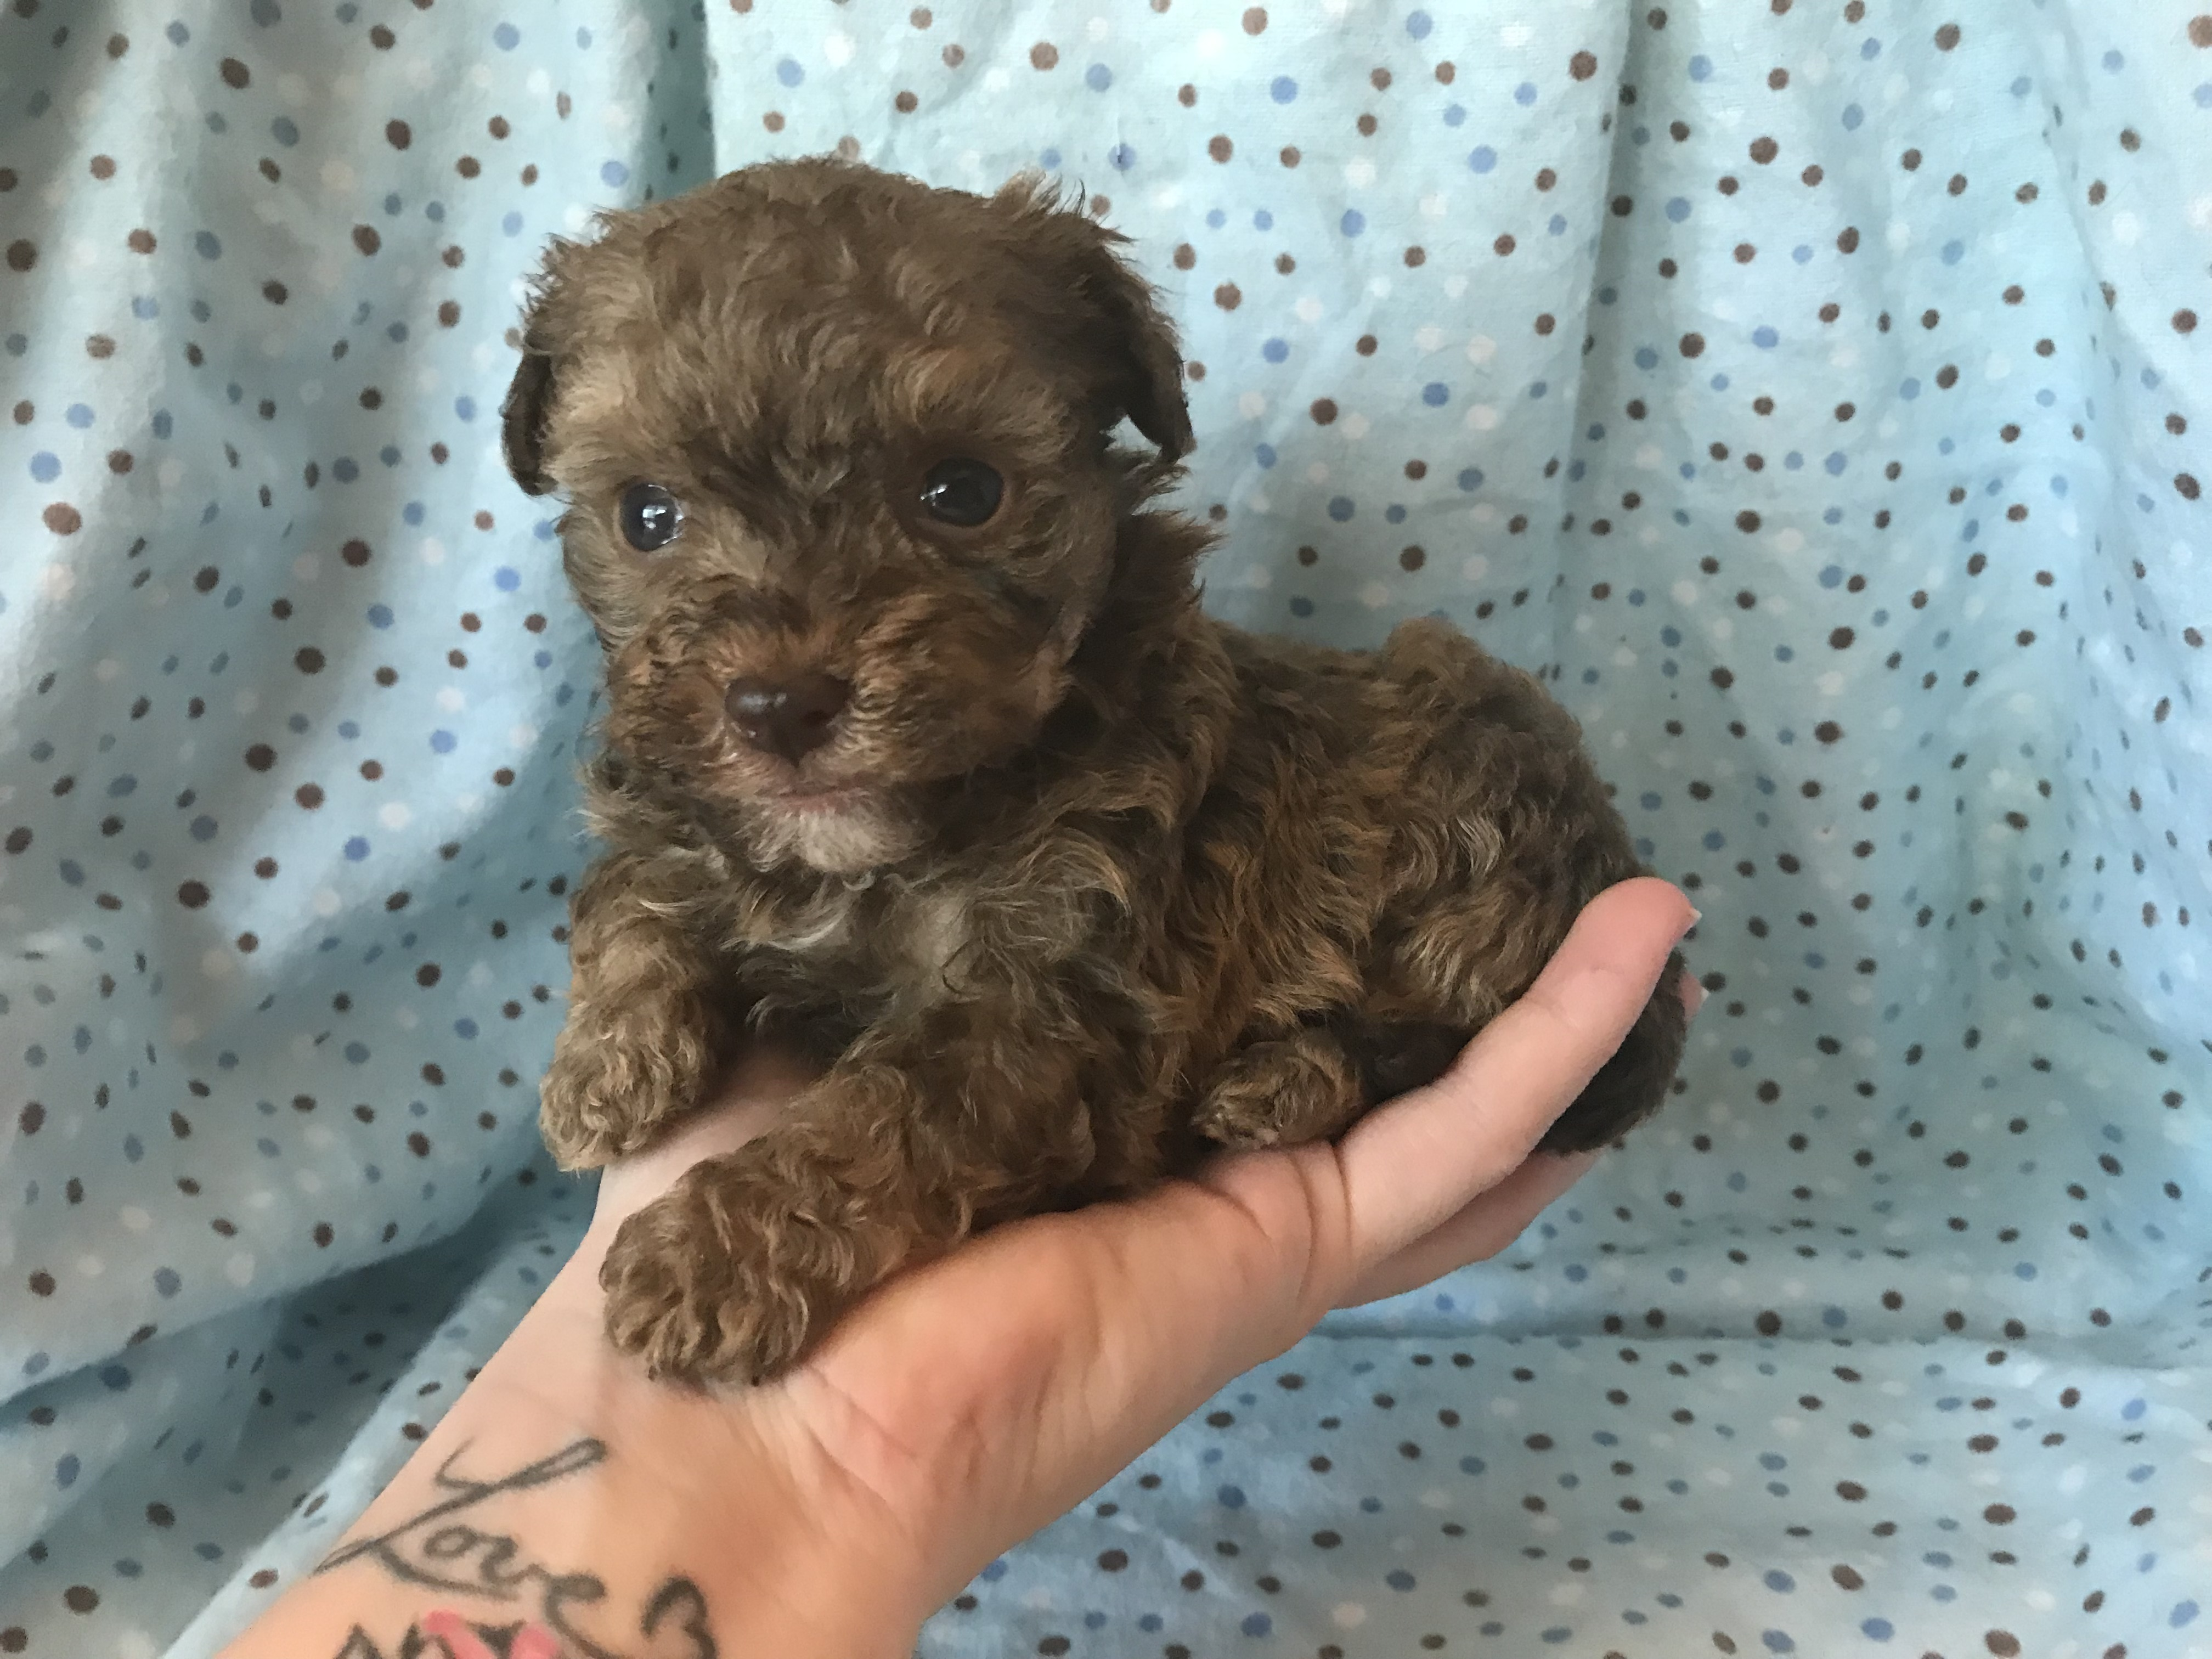 Teacup poodle weight chart image collections free any chart examples toy poodle weight chart gallery free any chart examples teacup poodle growth chart gallery free any nvjuhfo Images